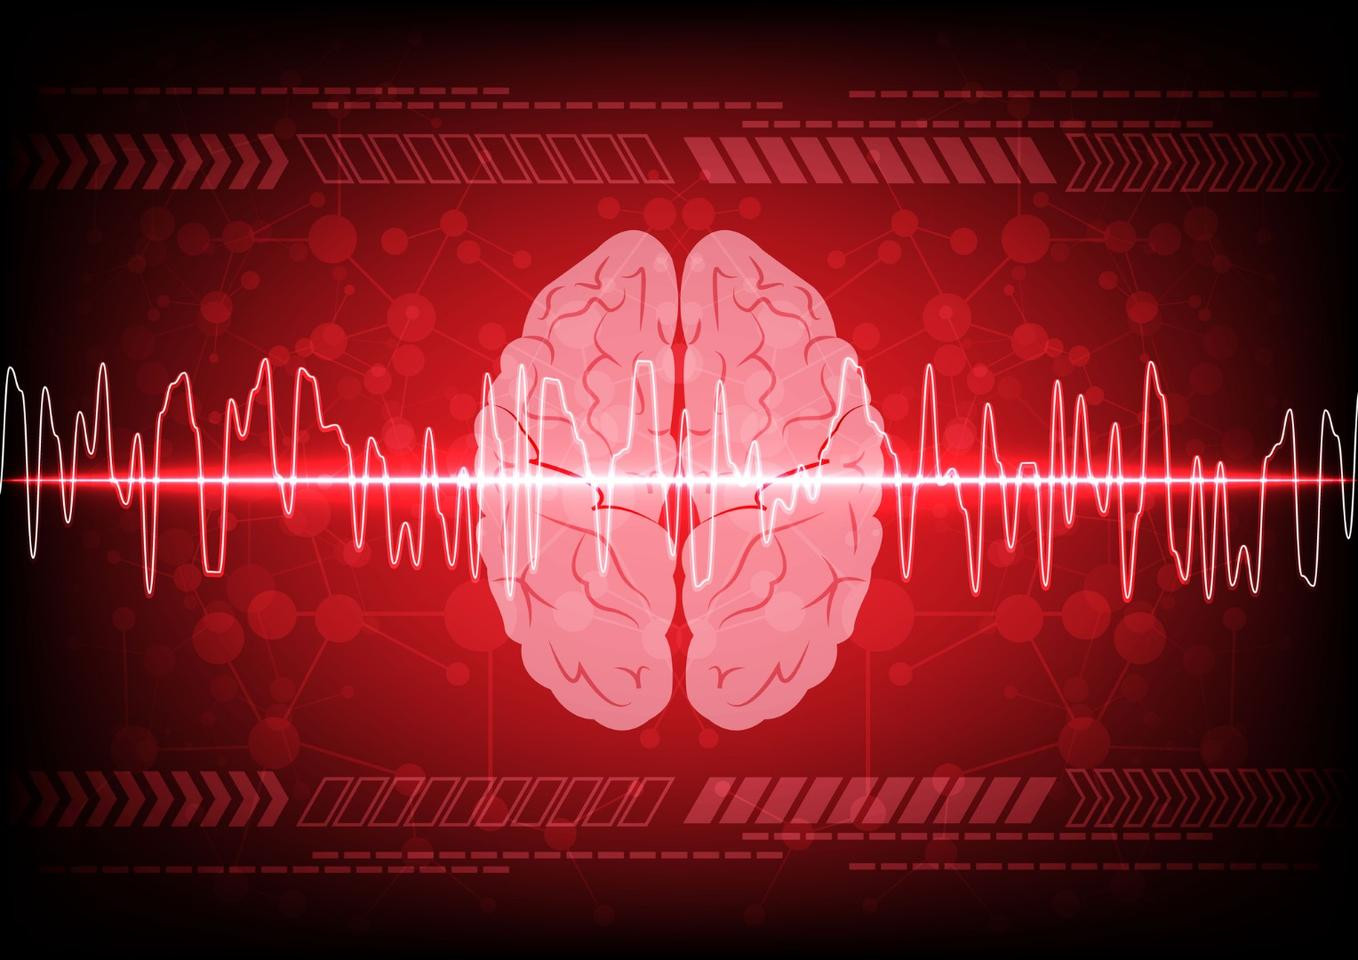 Researchers havedeveloped an algorithm that can translate neural signals from the auditory parts of the brain into synthesized speech